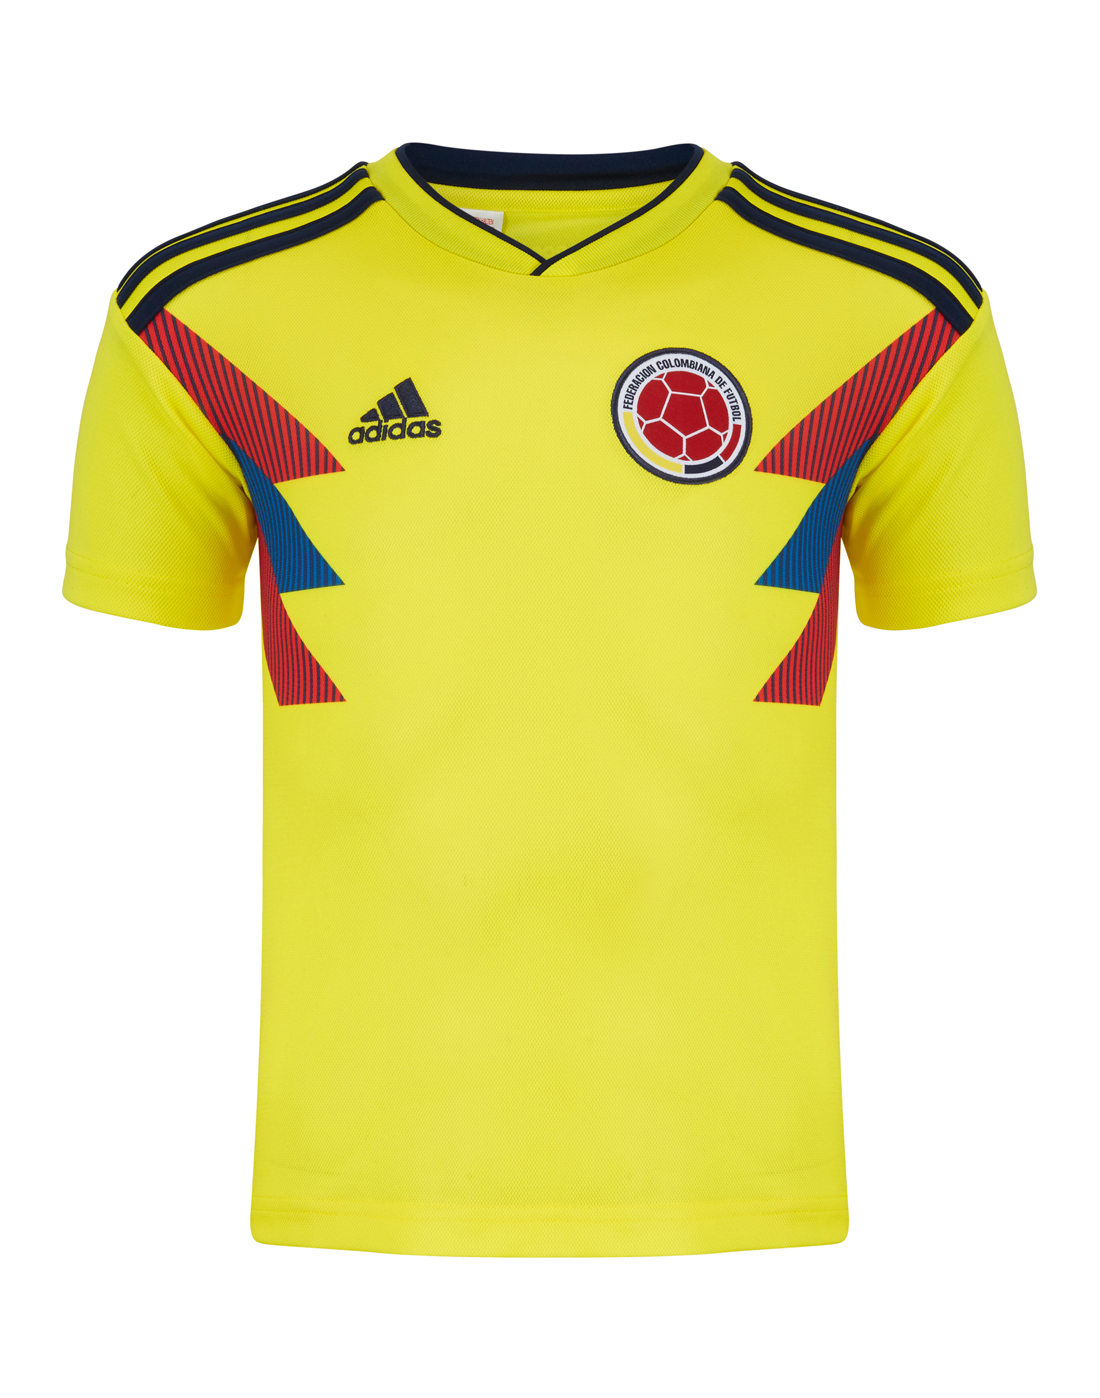 d66e0b0dcc4a8 Kids Colombia WC18 Home Jersey